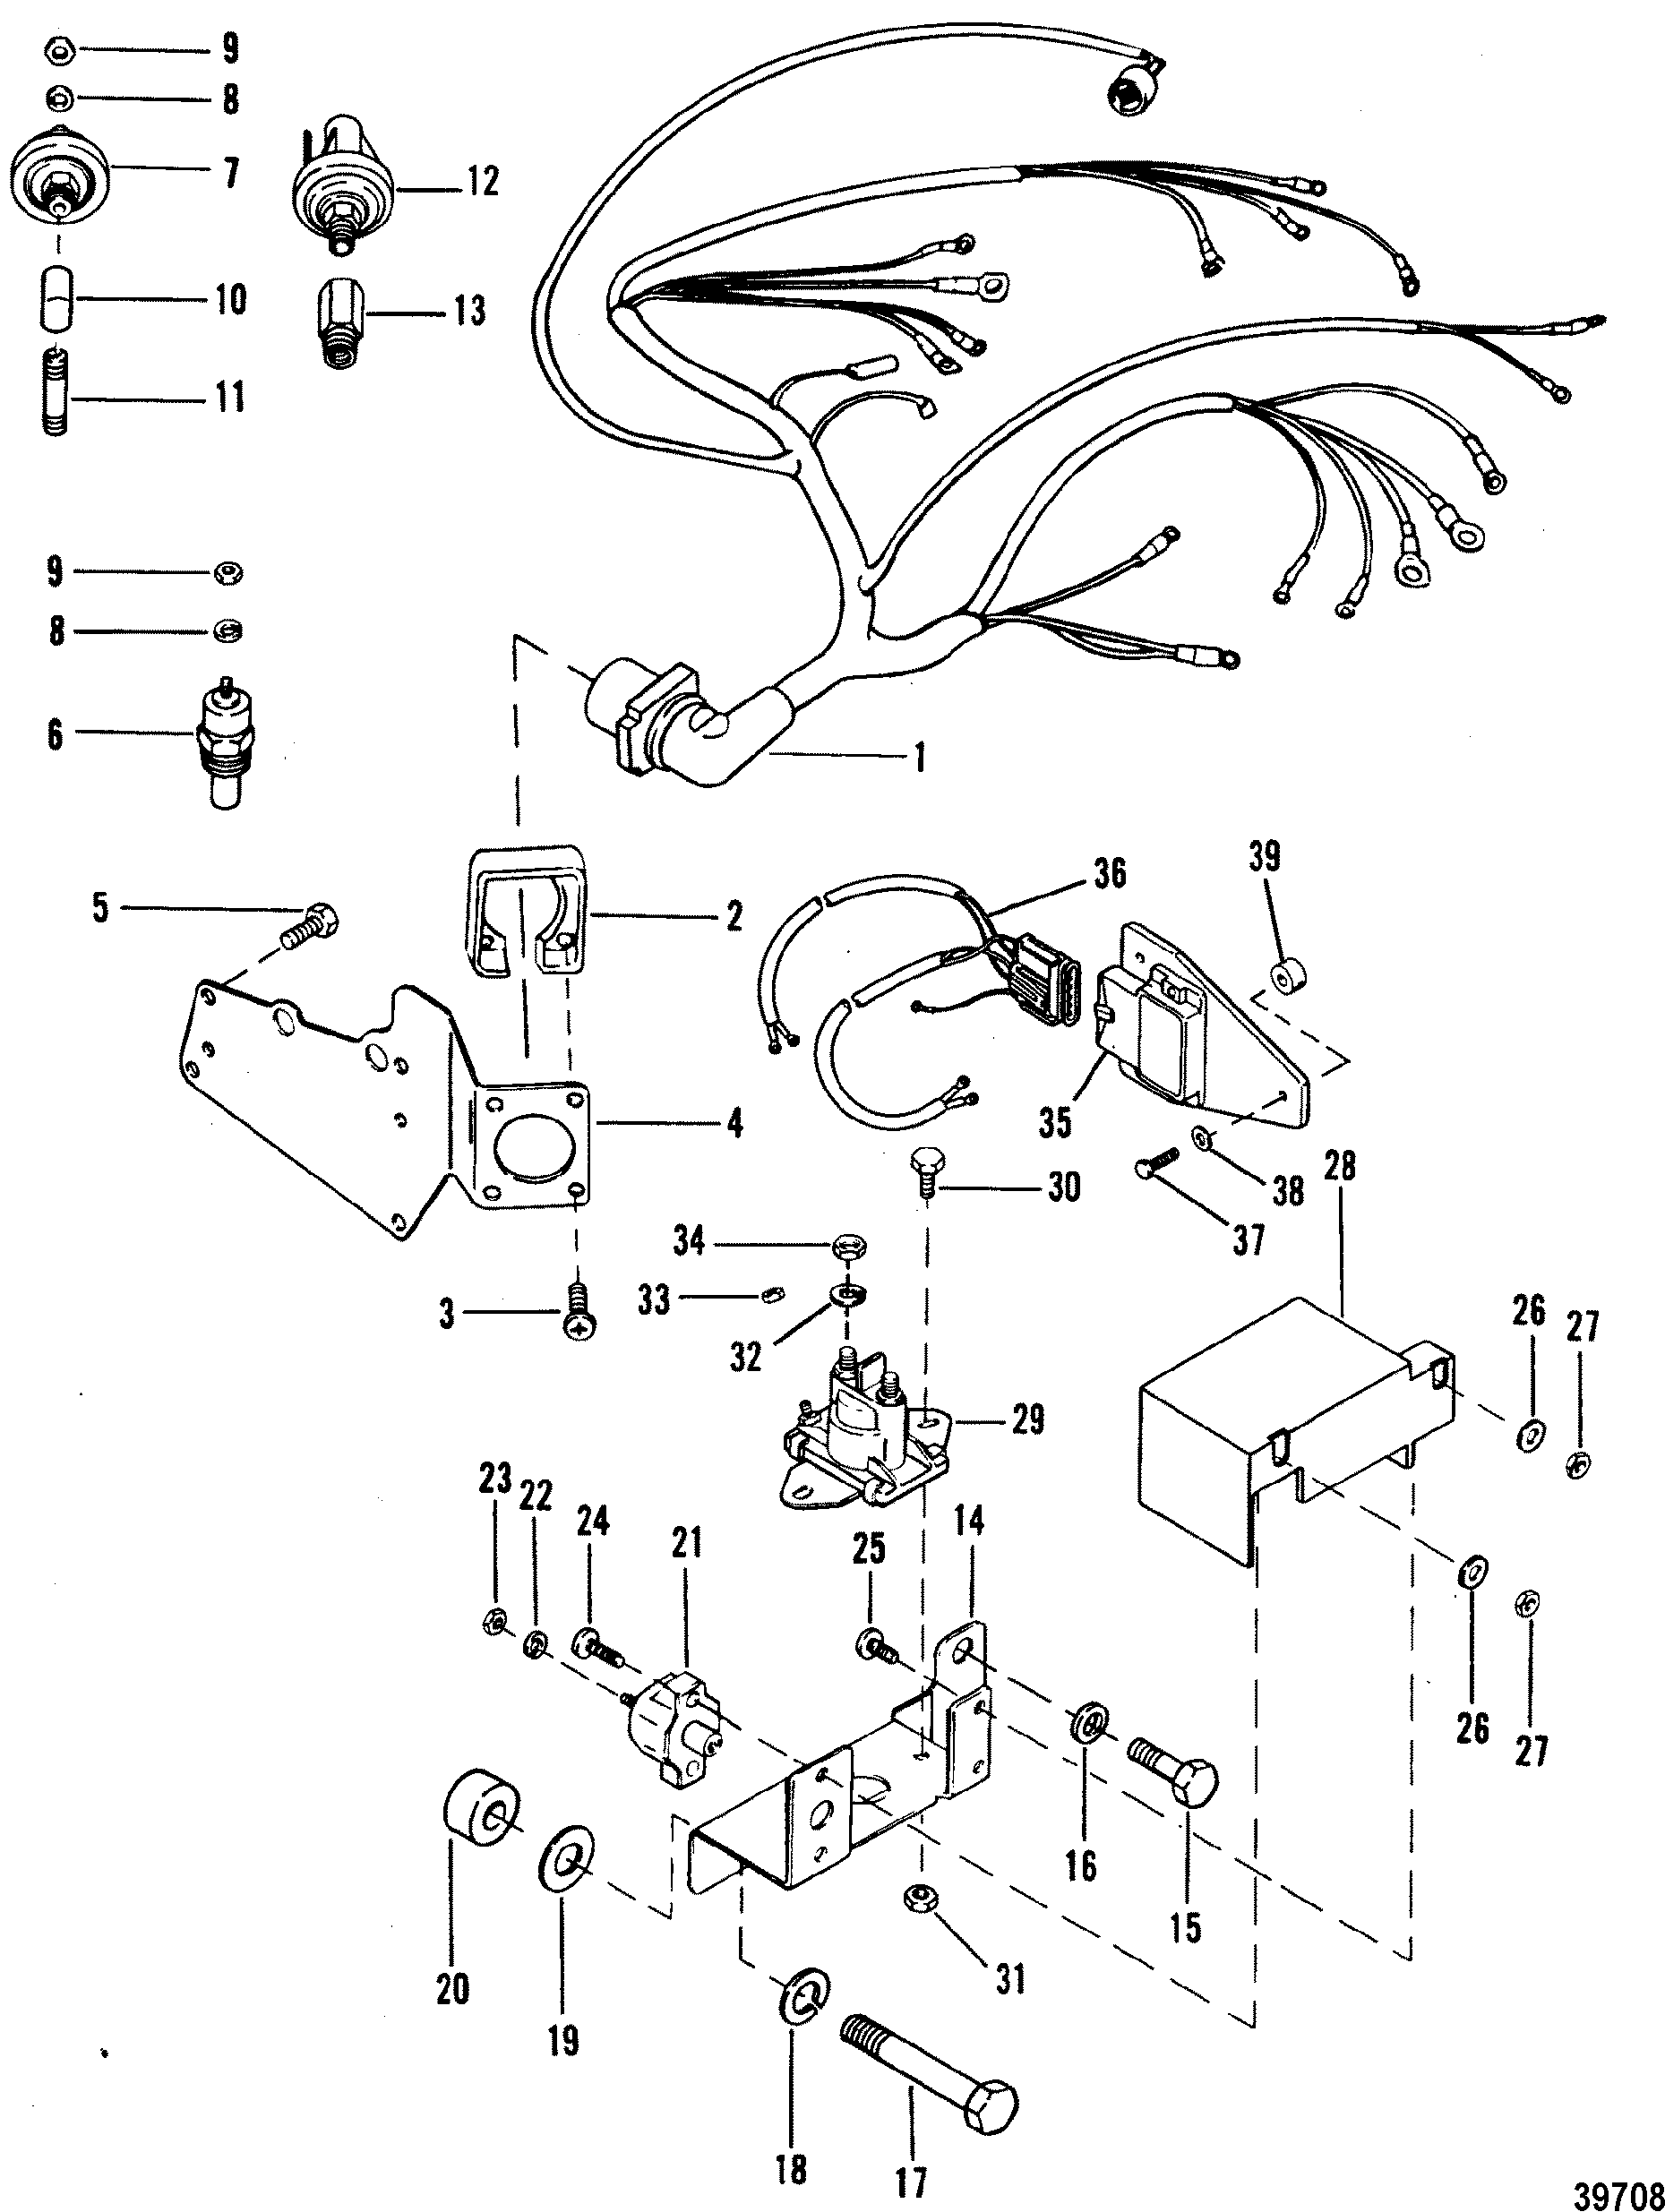 wiring harness and electrical components for mercruiser 4 3l 4 3lx rh jamestowndistributors com sumitomo wiring harness components wiring harness components design